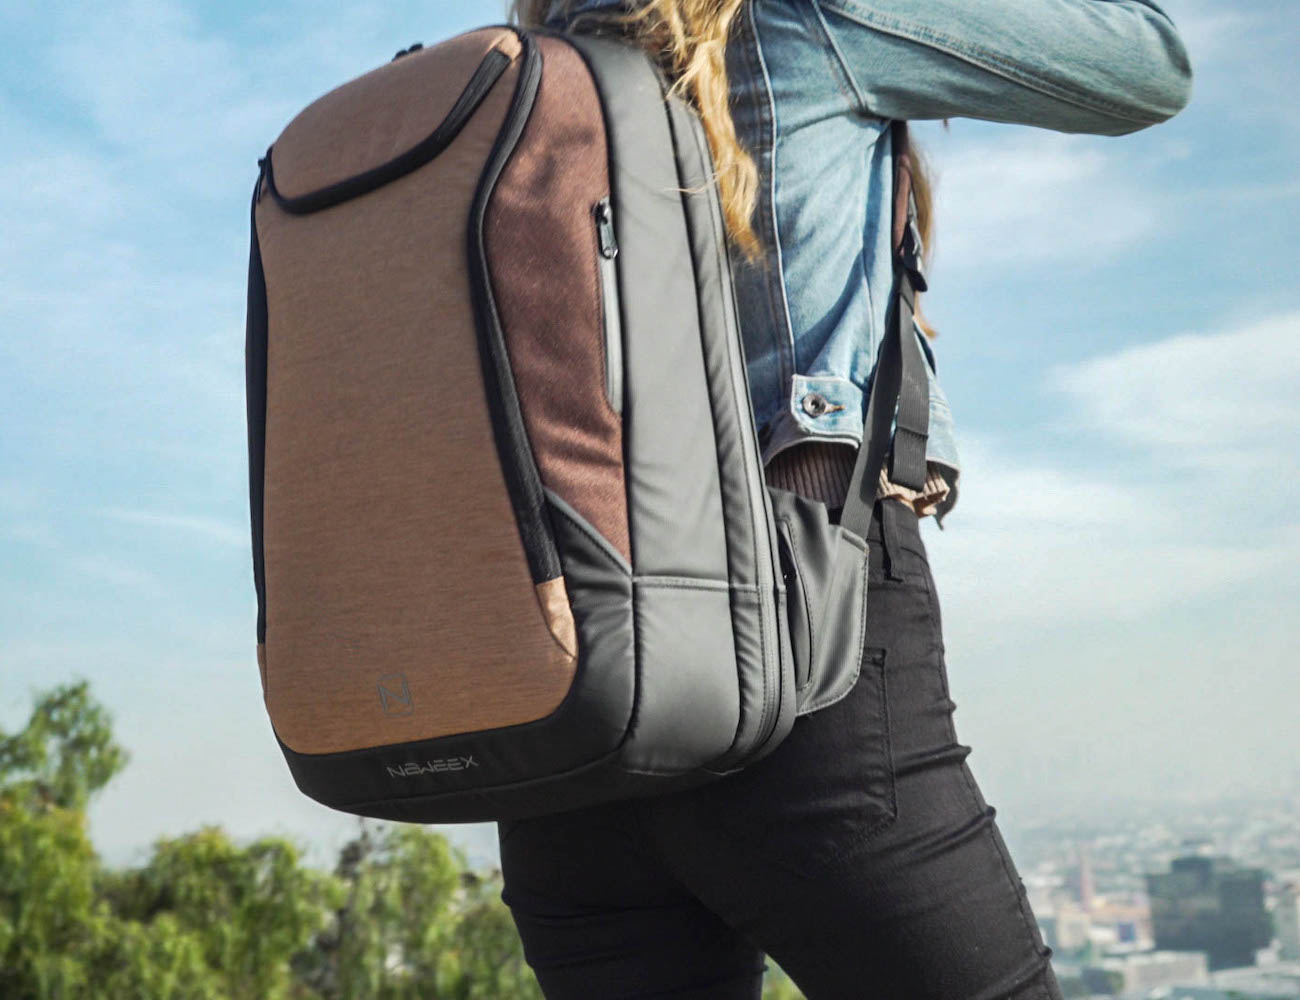 NEWEEX All-In-One Travel Backpack helps you stay prepared for any adventure